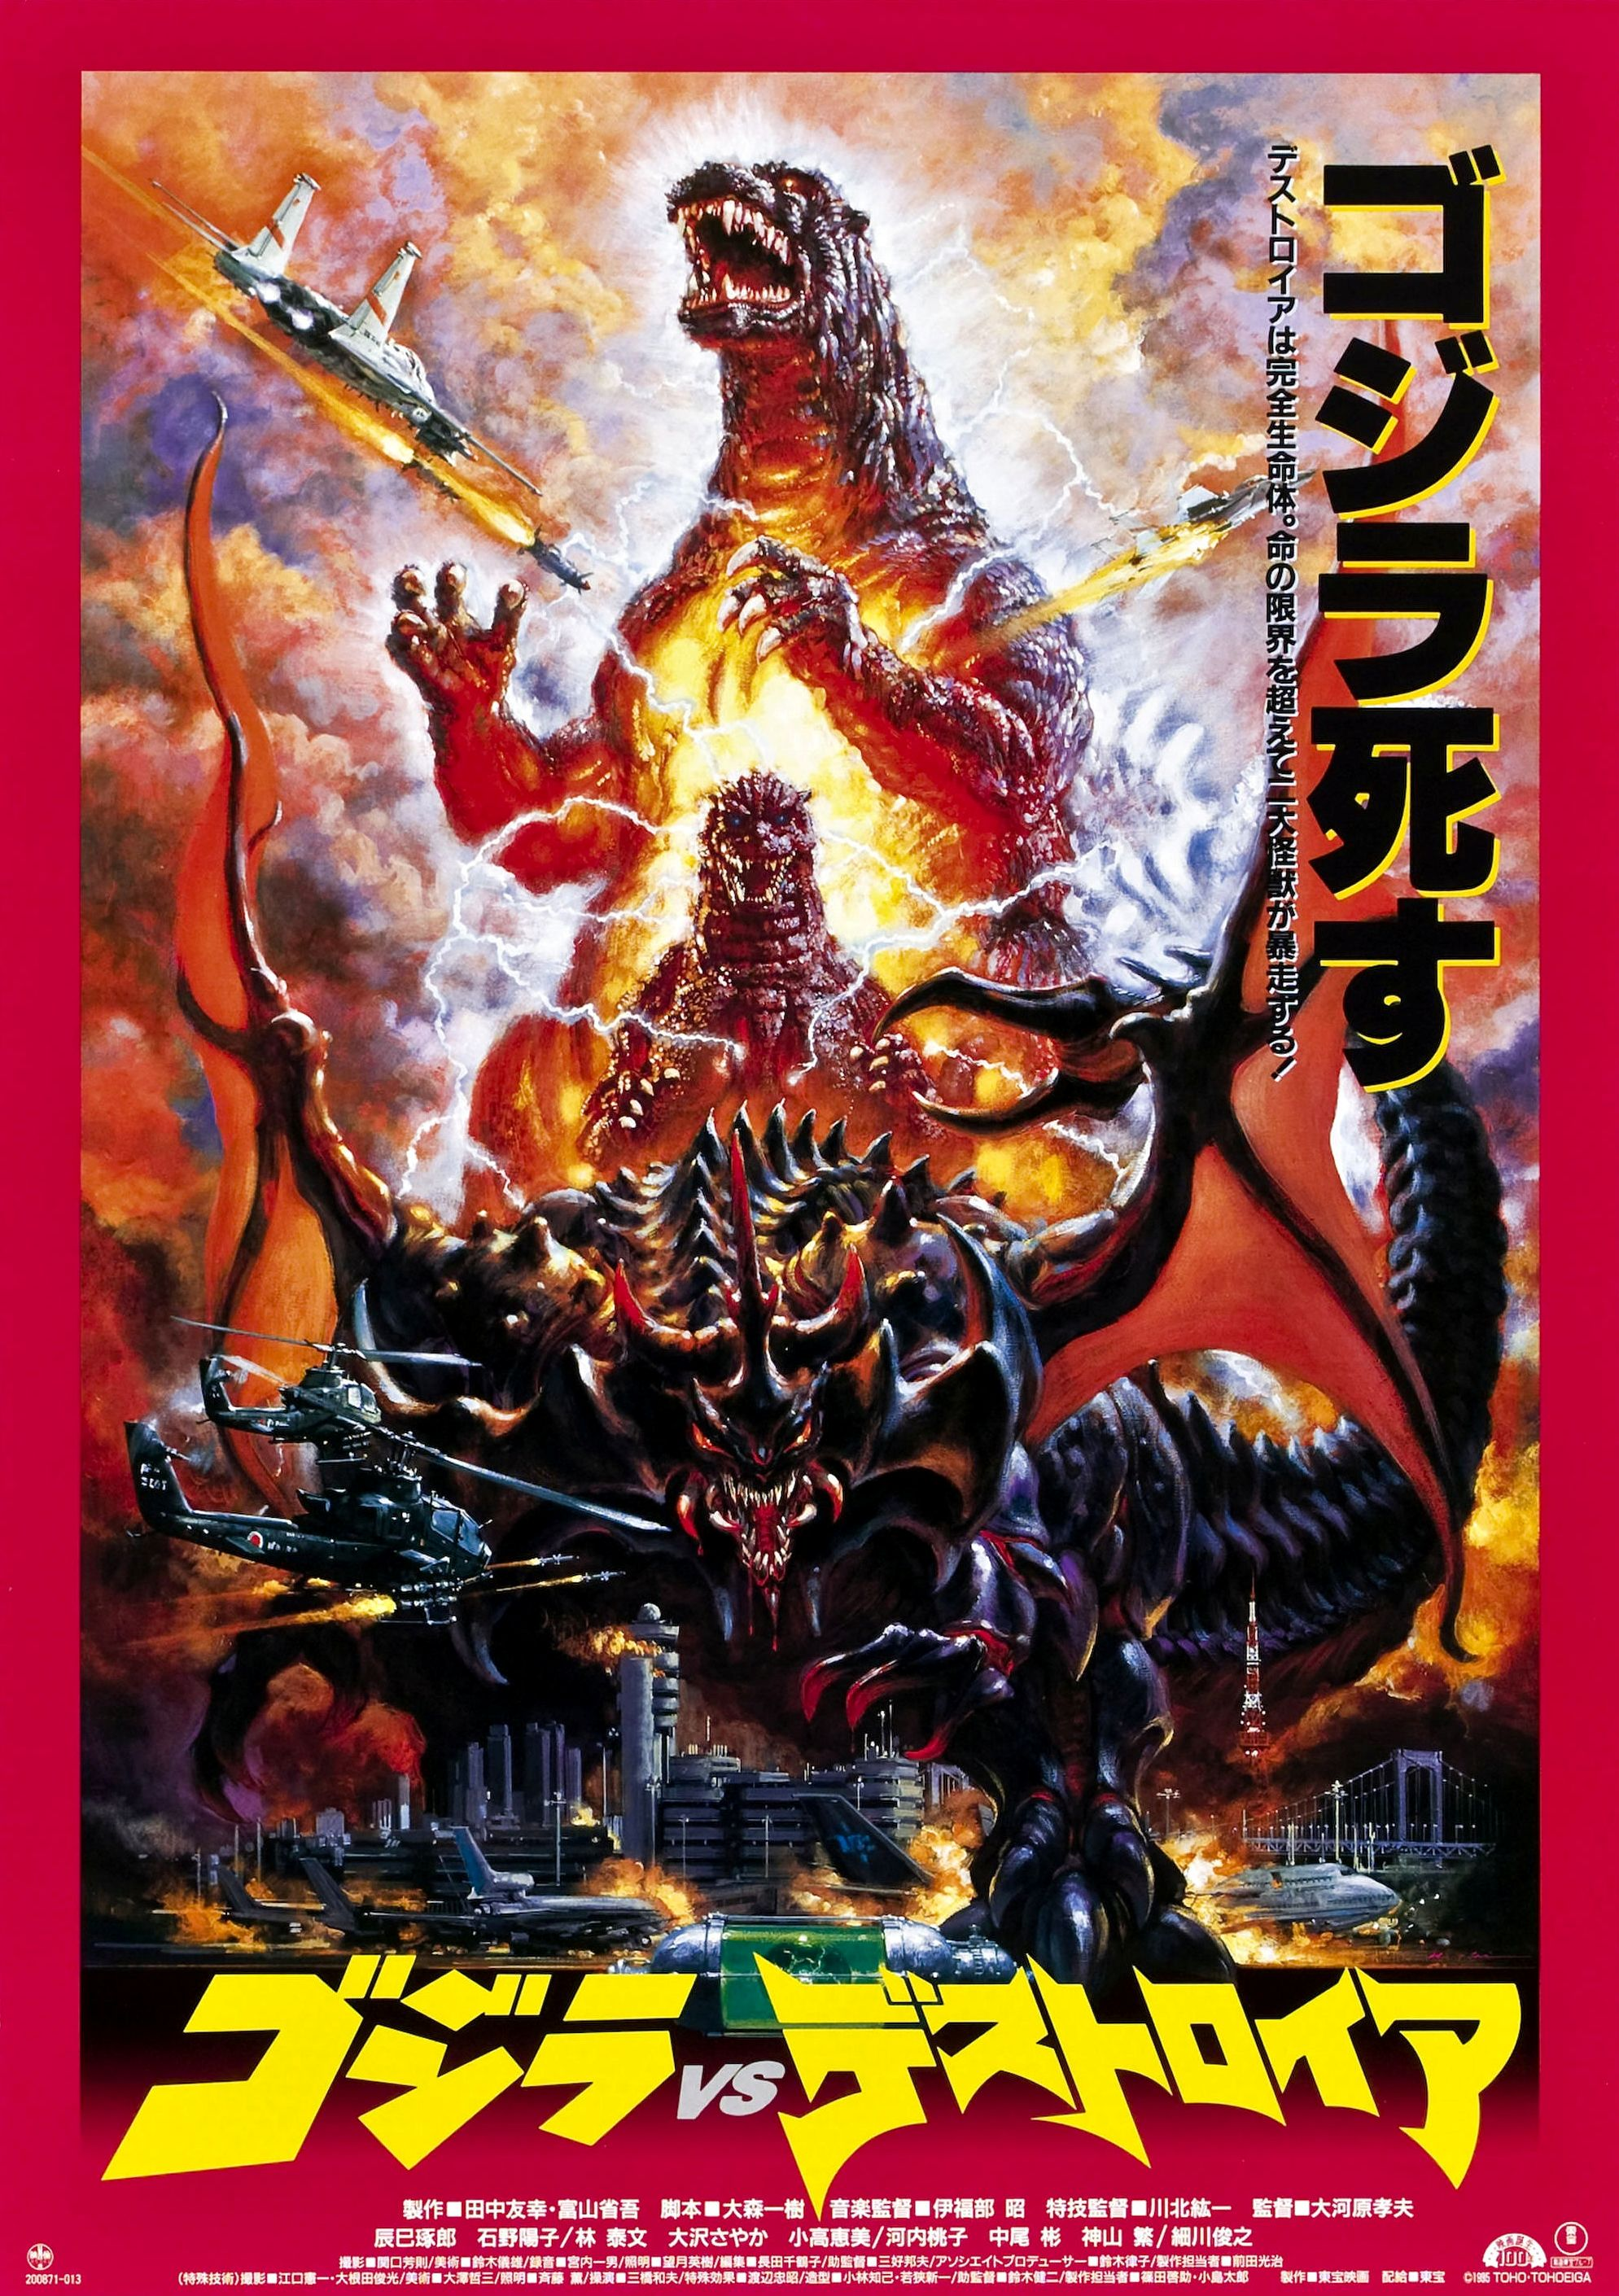 http://vignette3.wikia.nocookie.net/godzilla/images/0/08/Godzilla_vs_destroyer_poster_01.jpg/revision/latest?cb=20120330113247